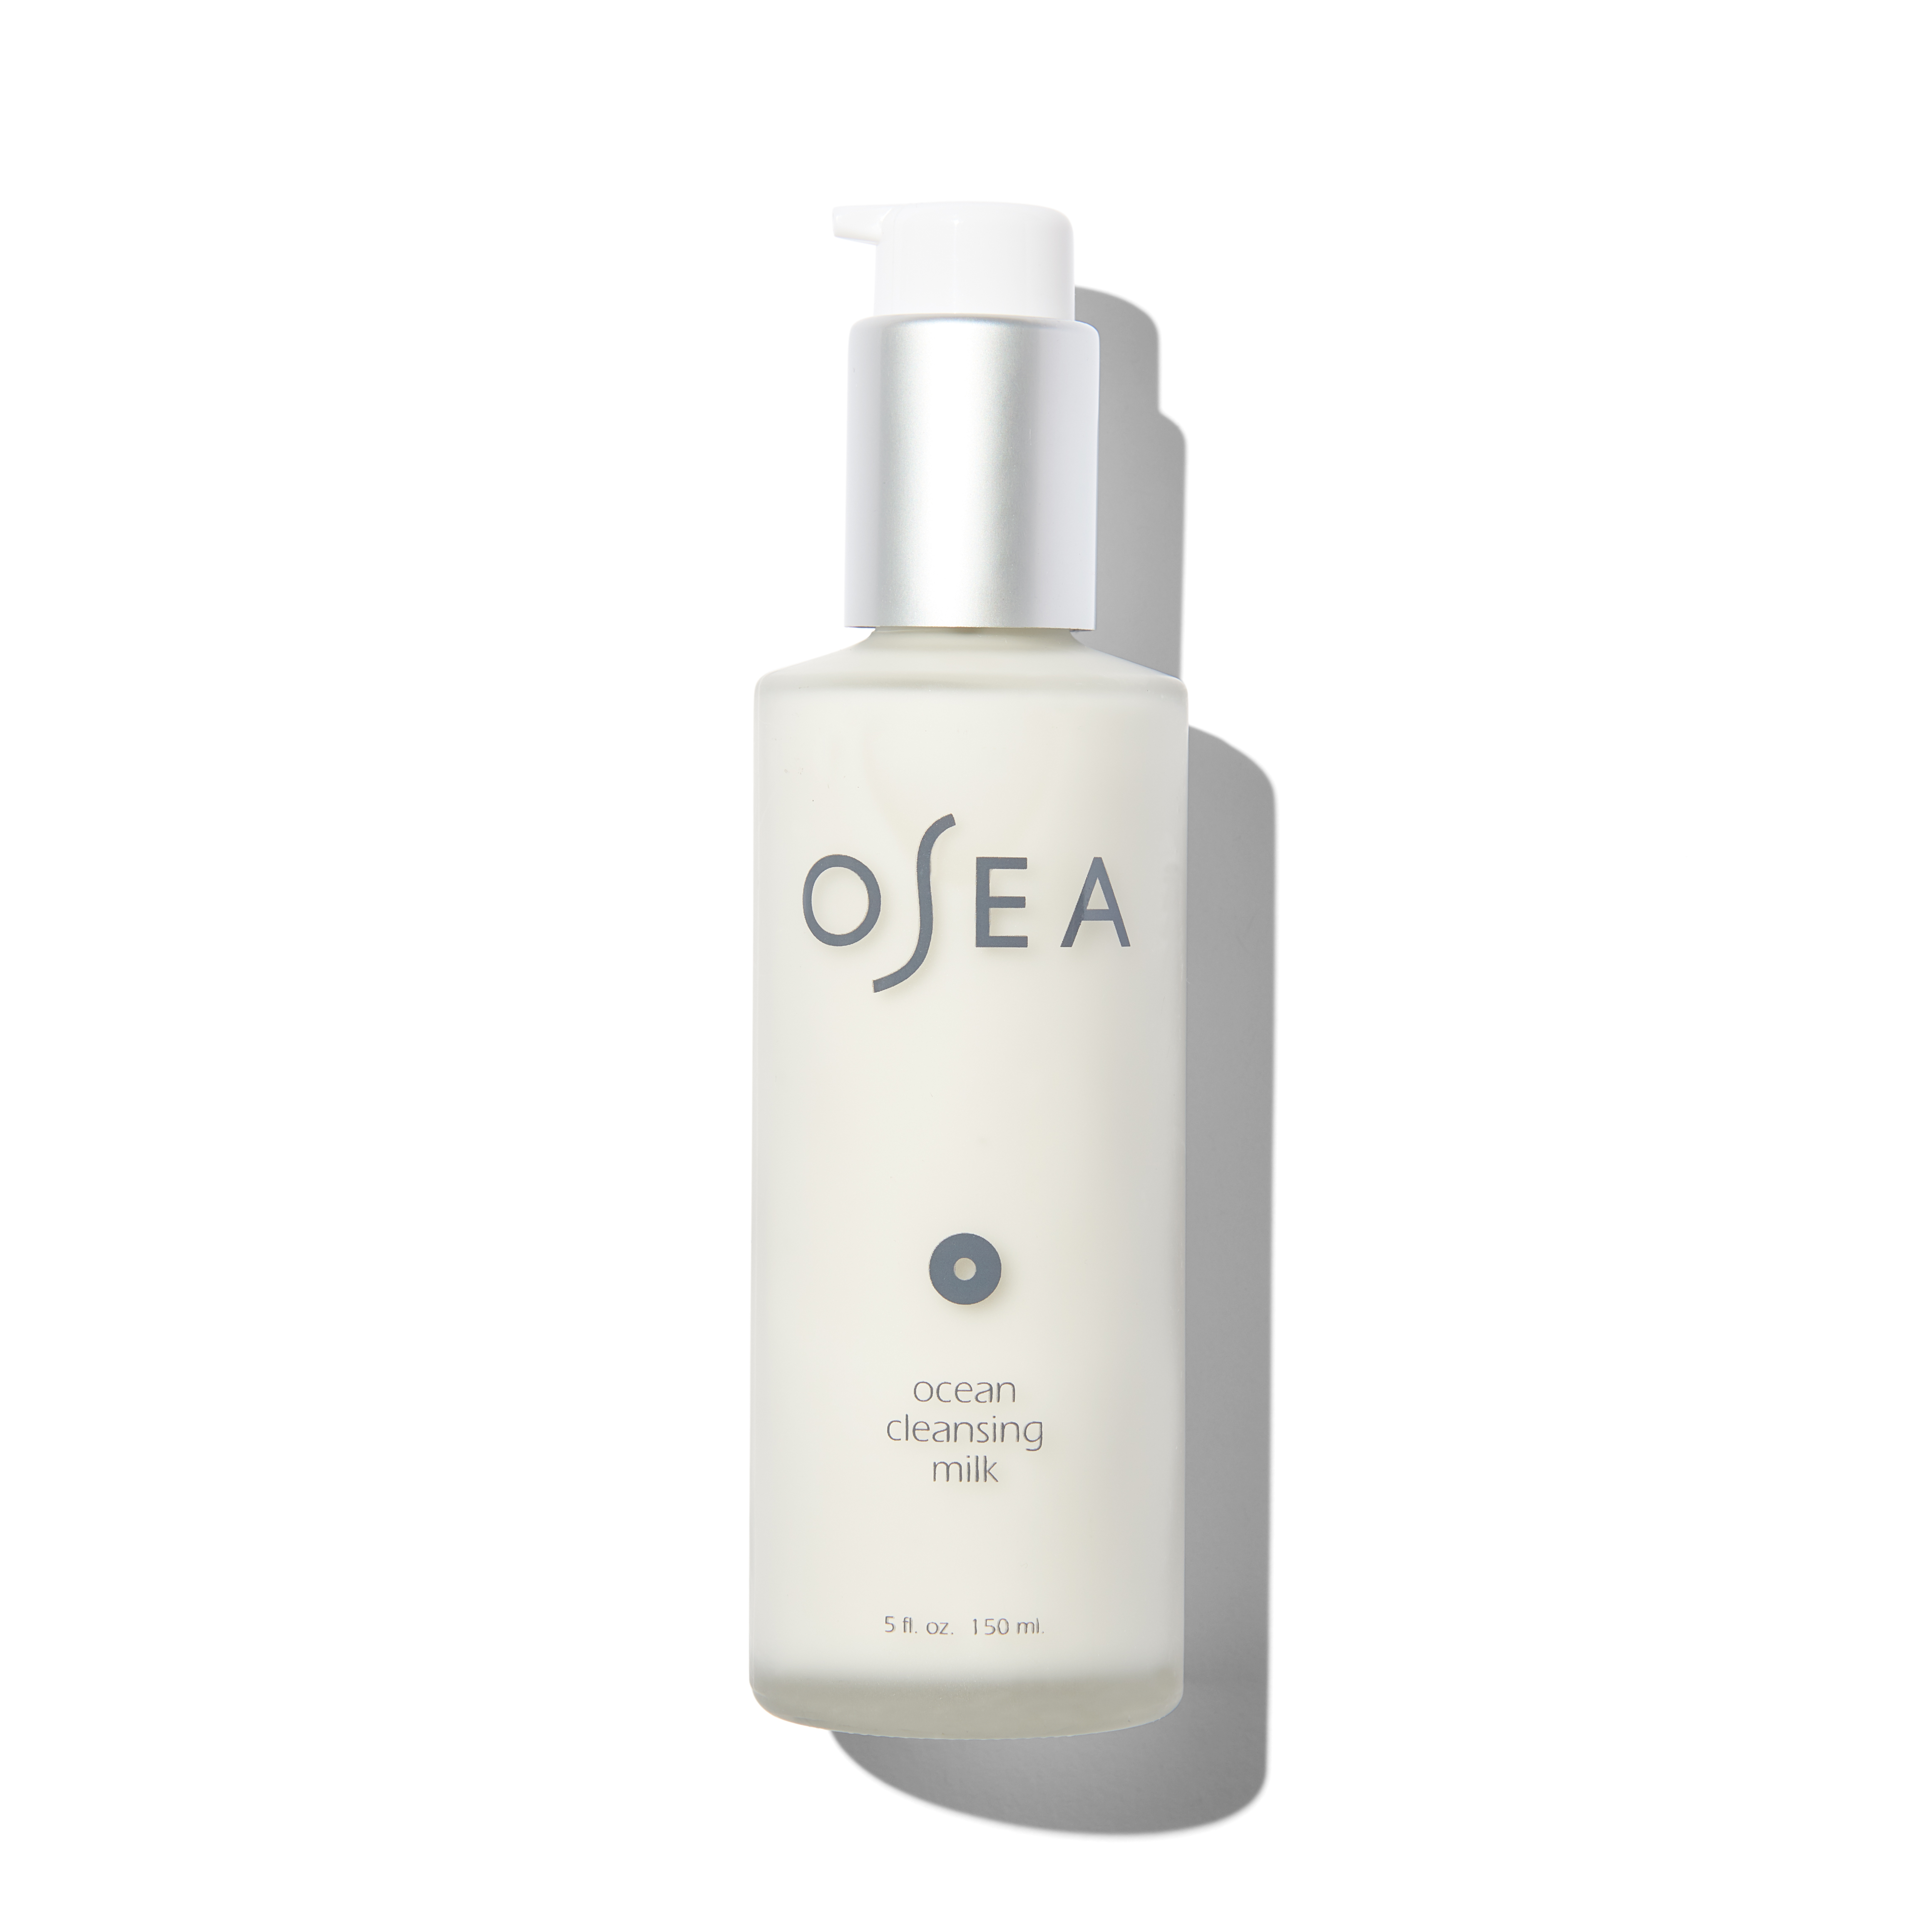 675468000215 - OSEA Ocean Cleansing Milk